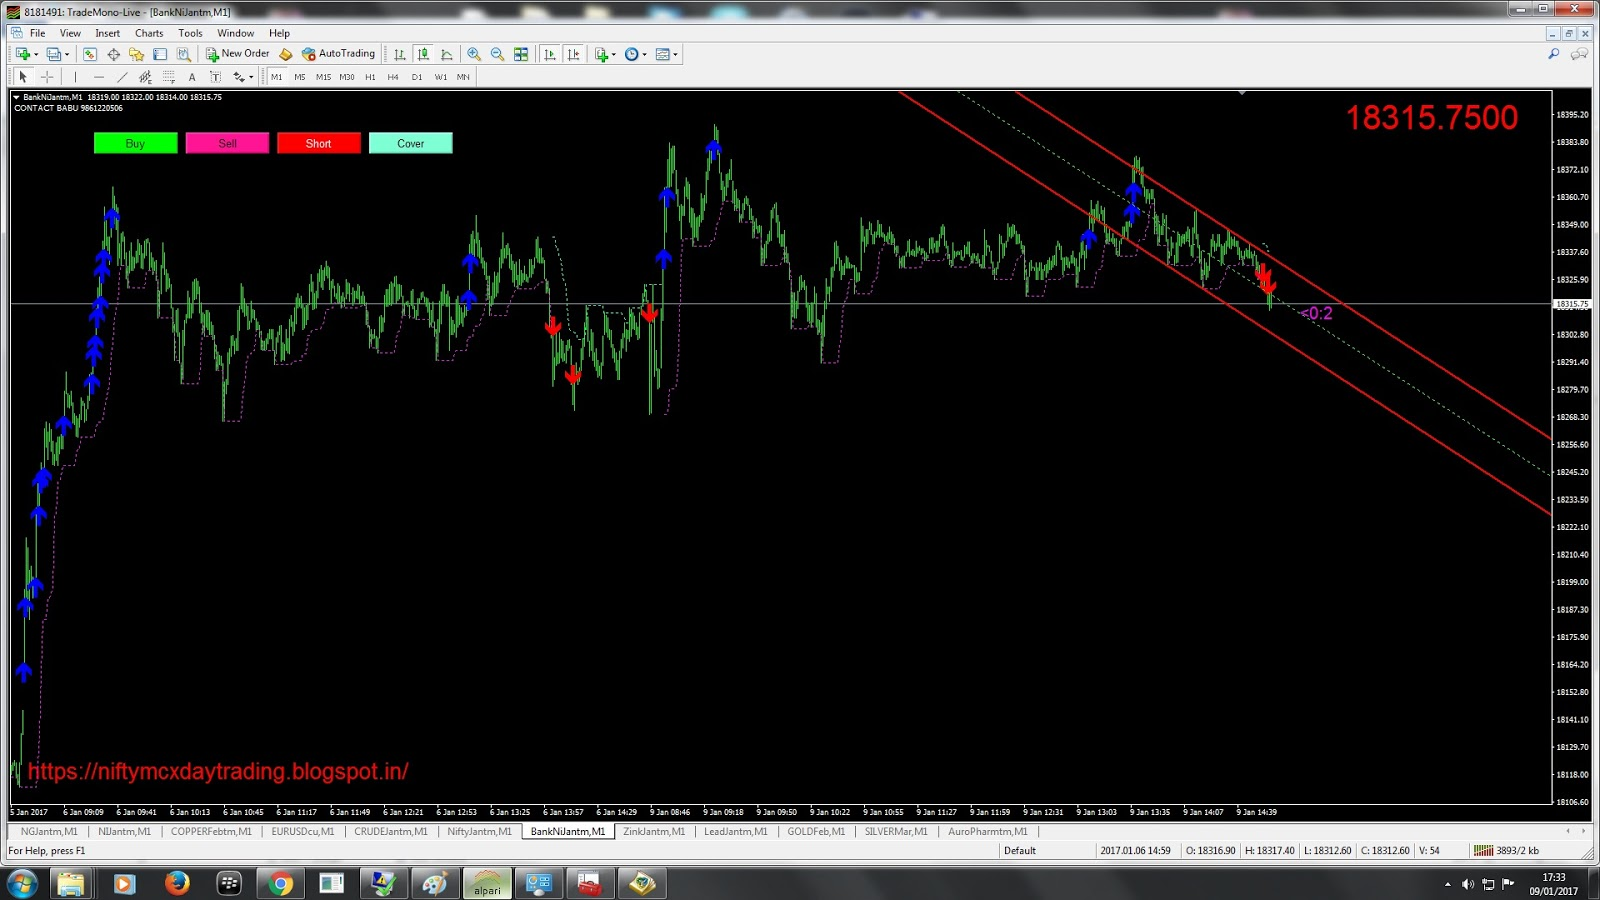 Nifty Banknifty Mcx Mt4 Indicators For Day Trading